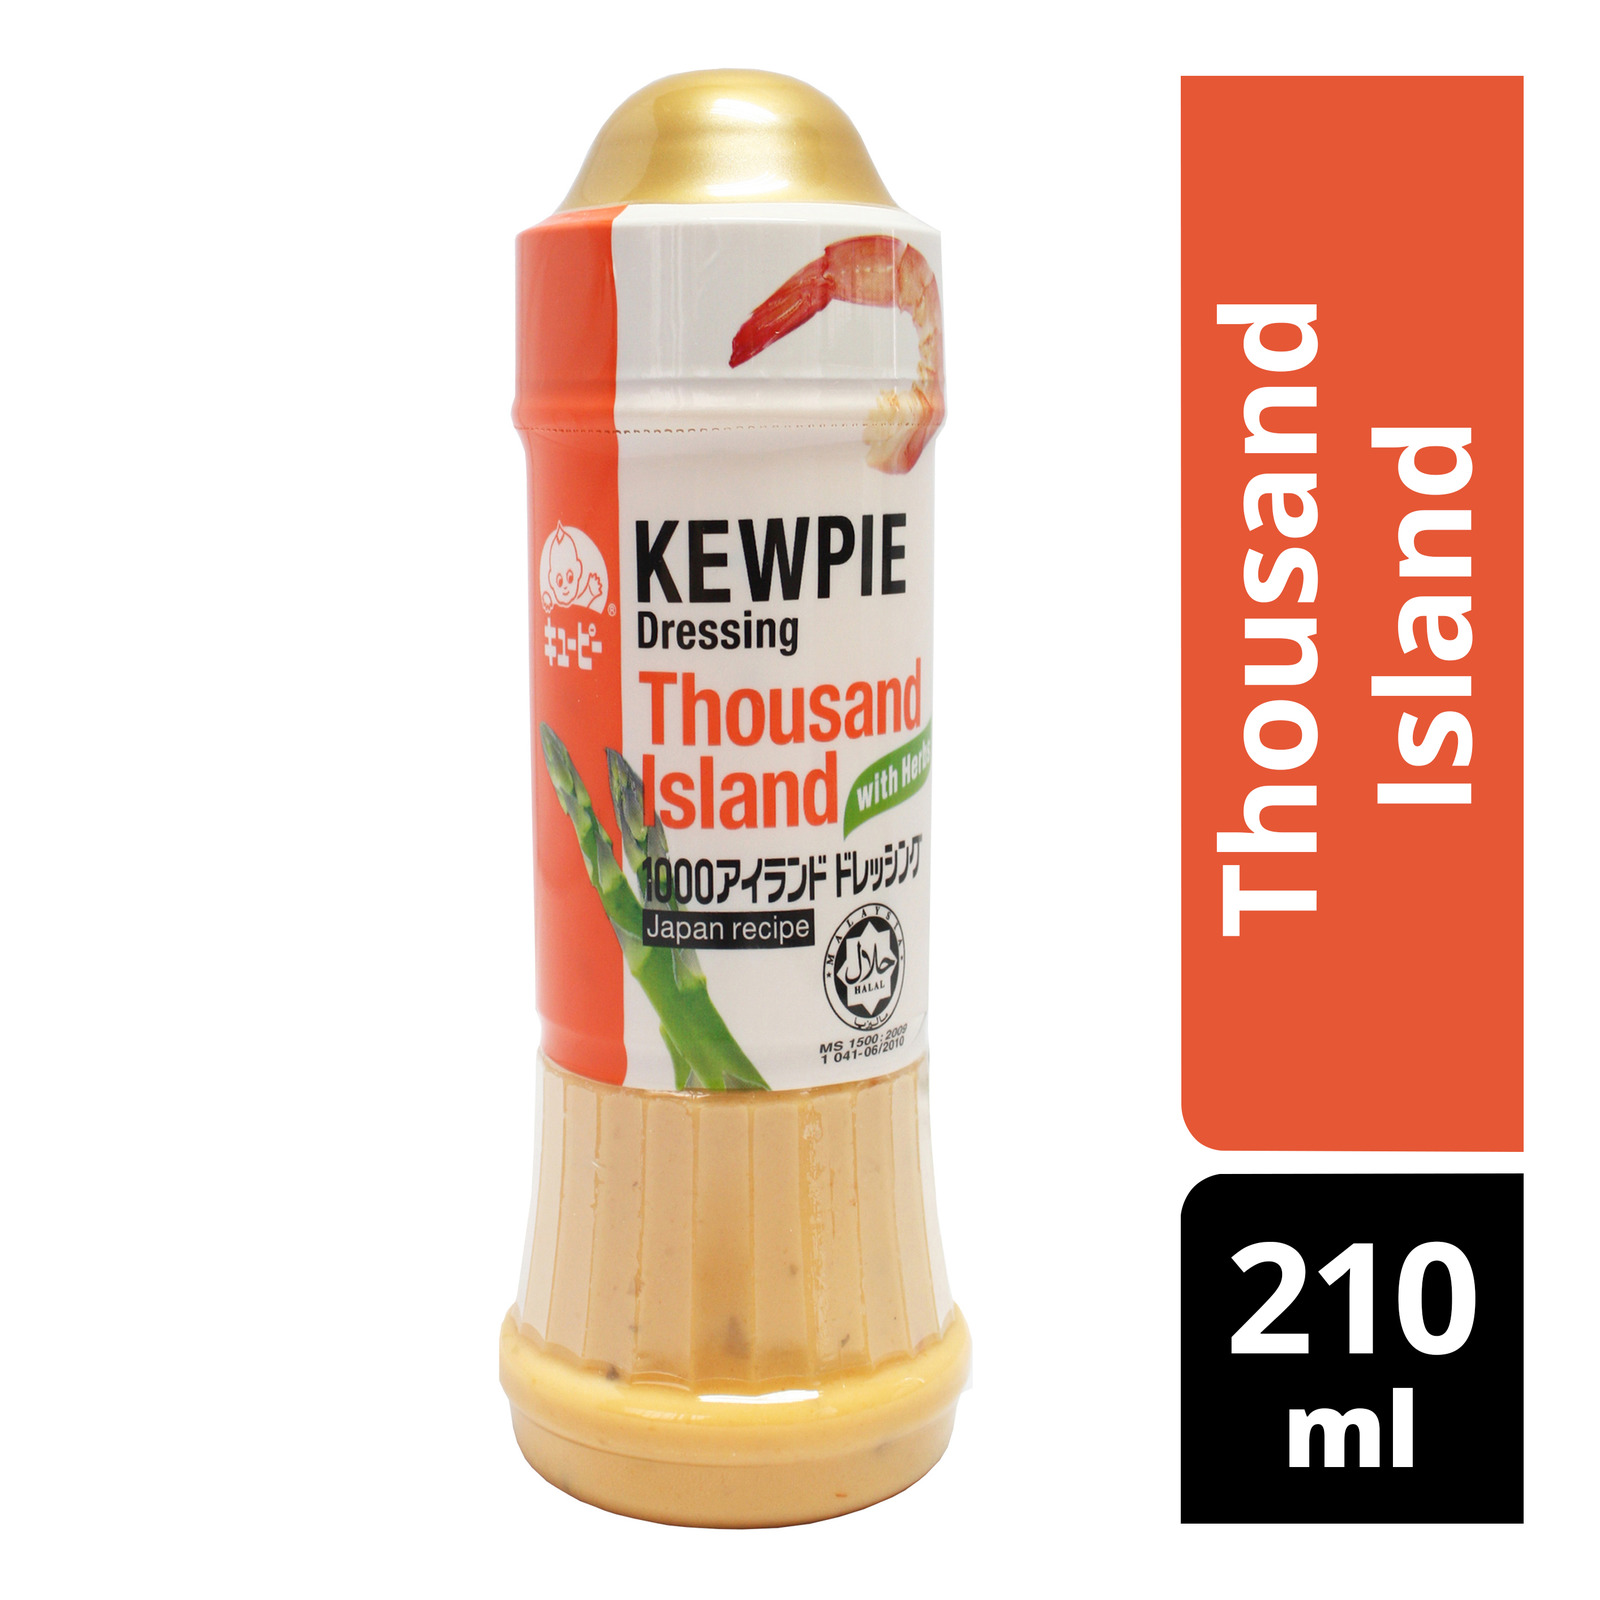 Kewpie Dressing - Thousand Island